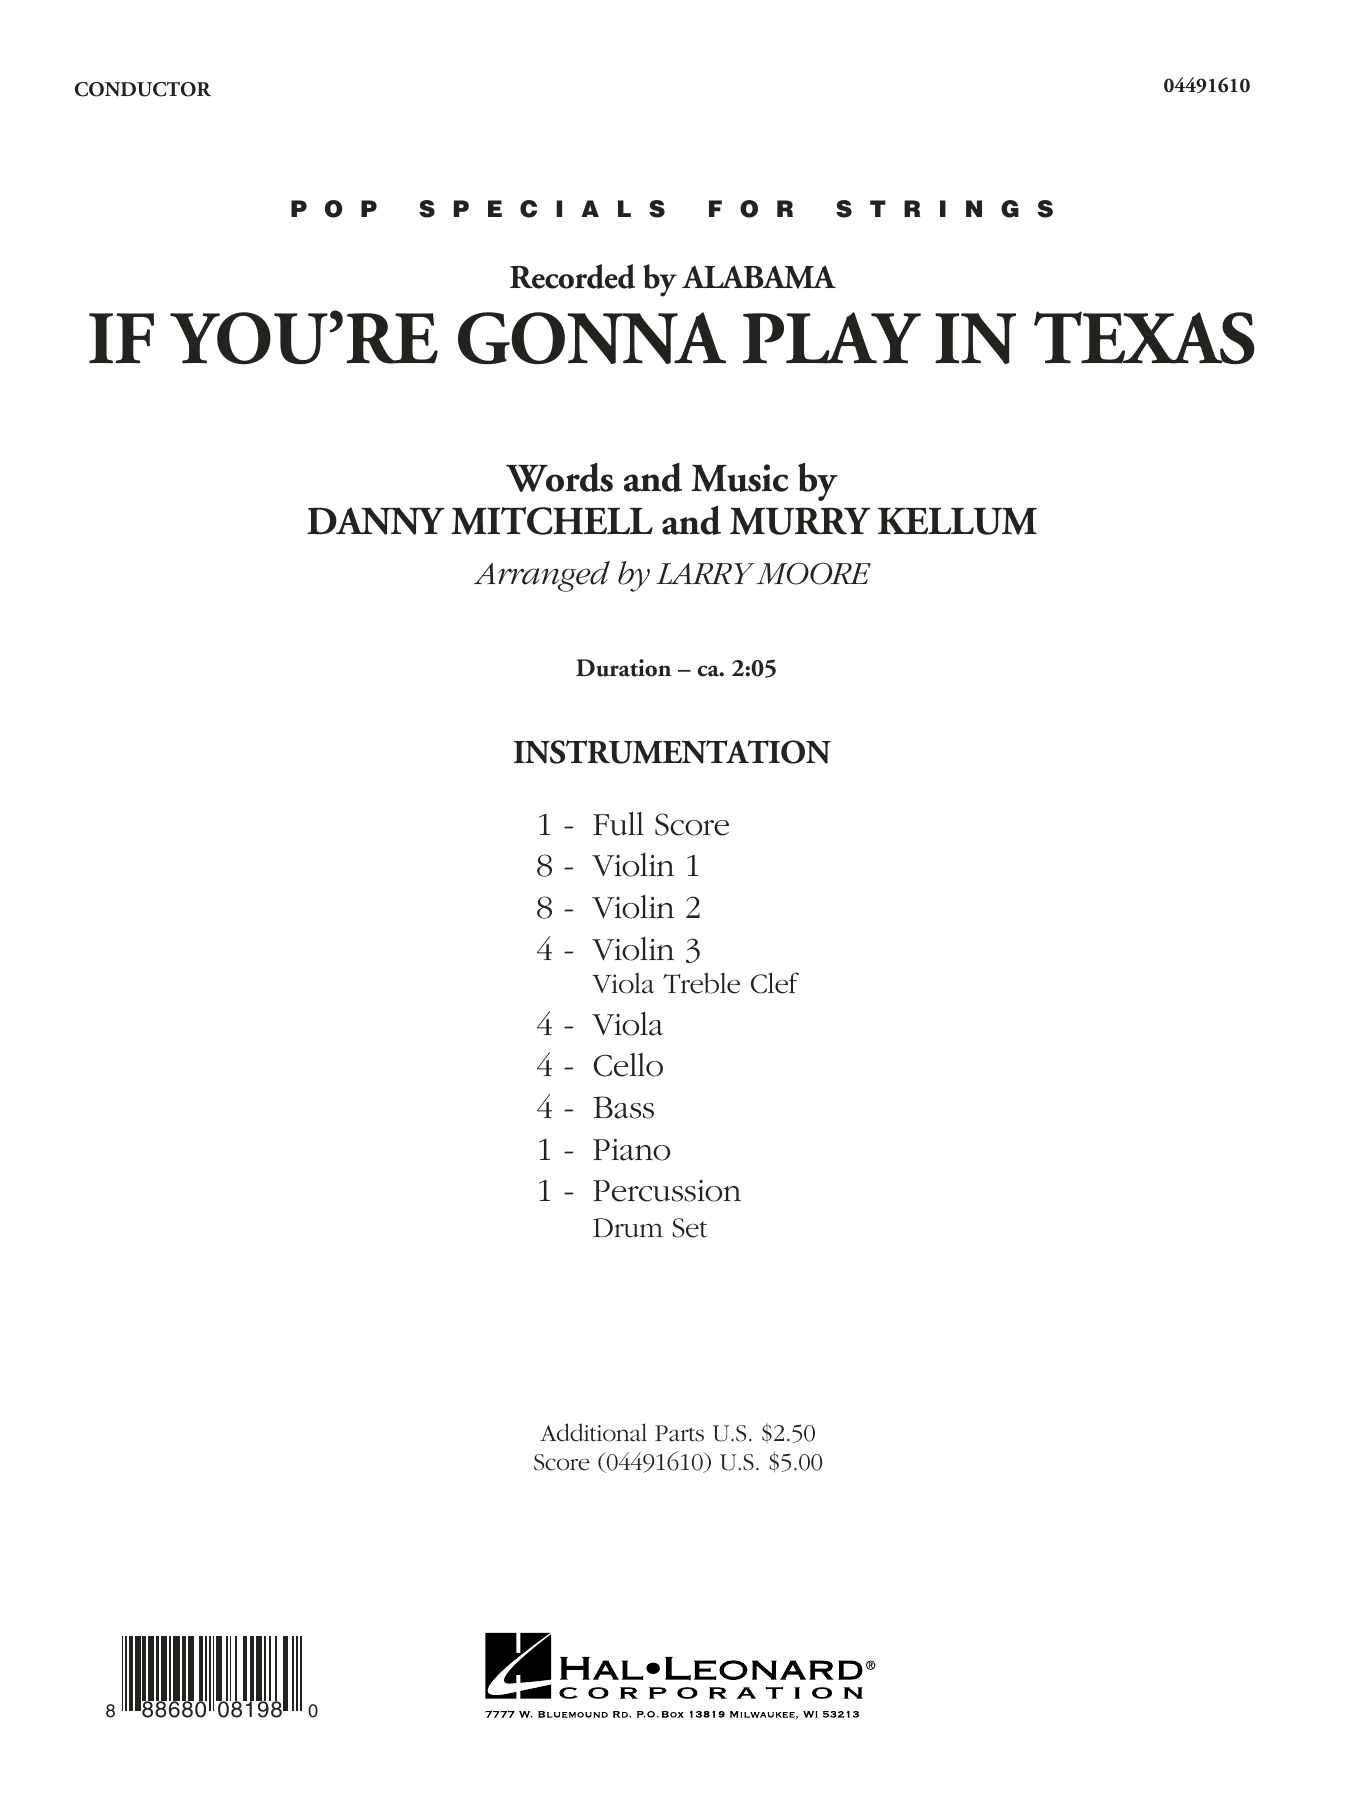 If You're Gonna Play in Texas (You Gotta Have a Fiddle in the Band) (COMPLETE) sheet music for orchestra by Murry Kellum, Alabama and Larry Moore. Score Image Preview.